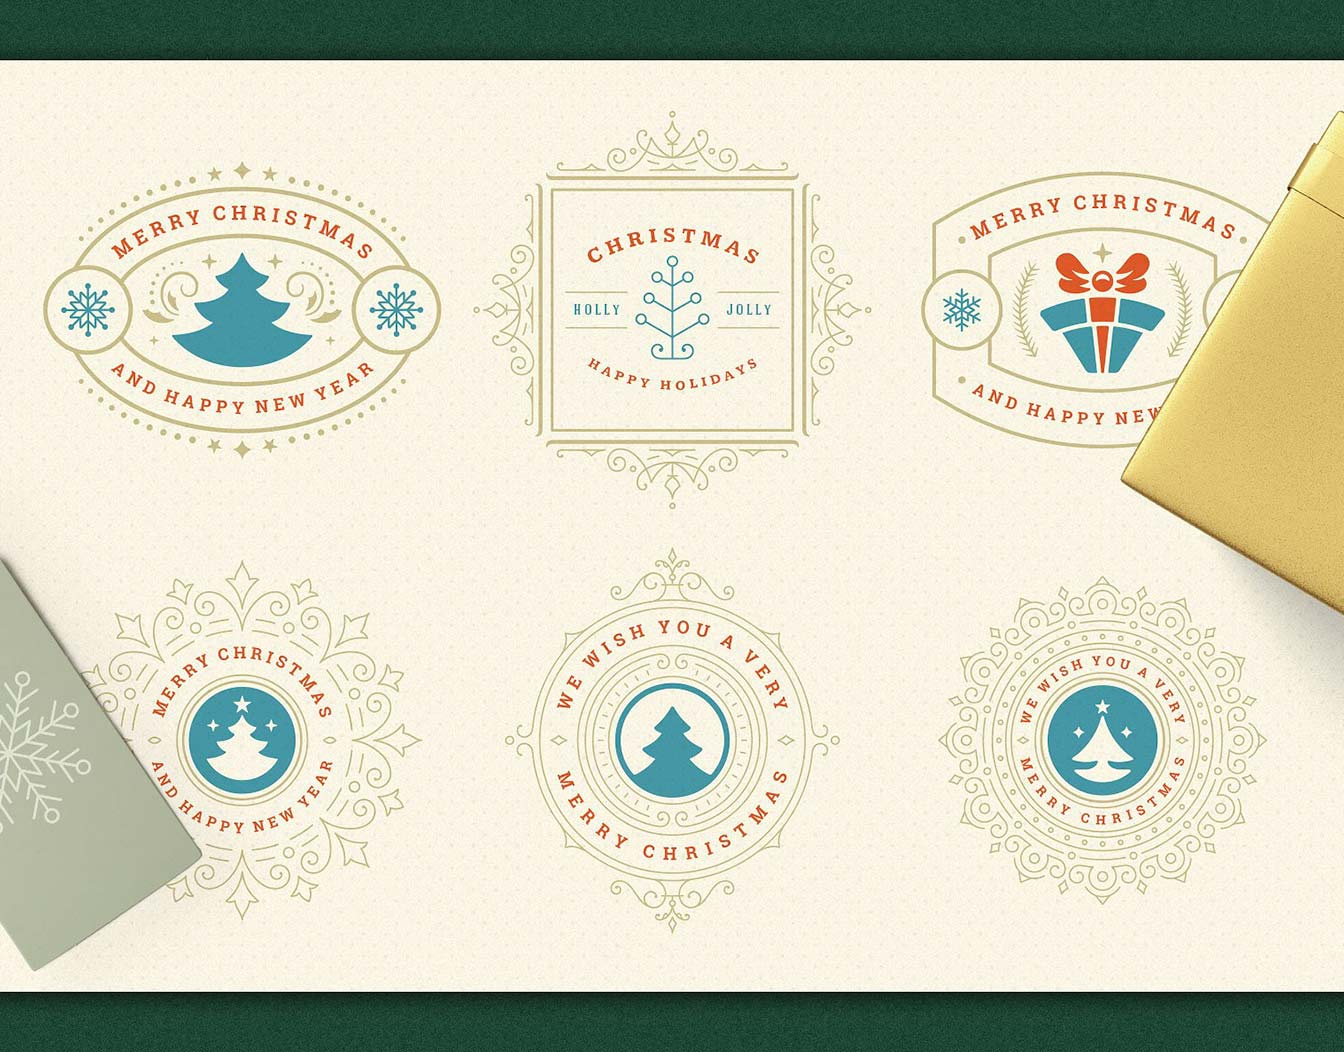 Vintage Christmas stamps on paper